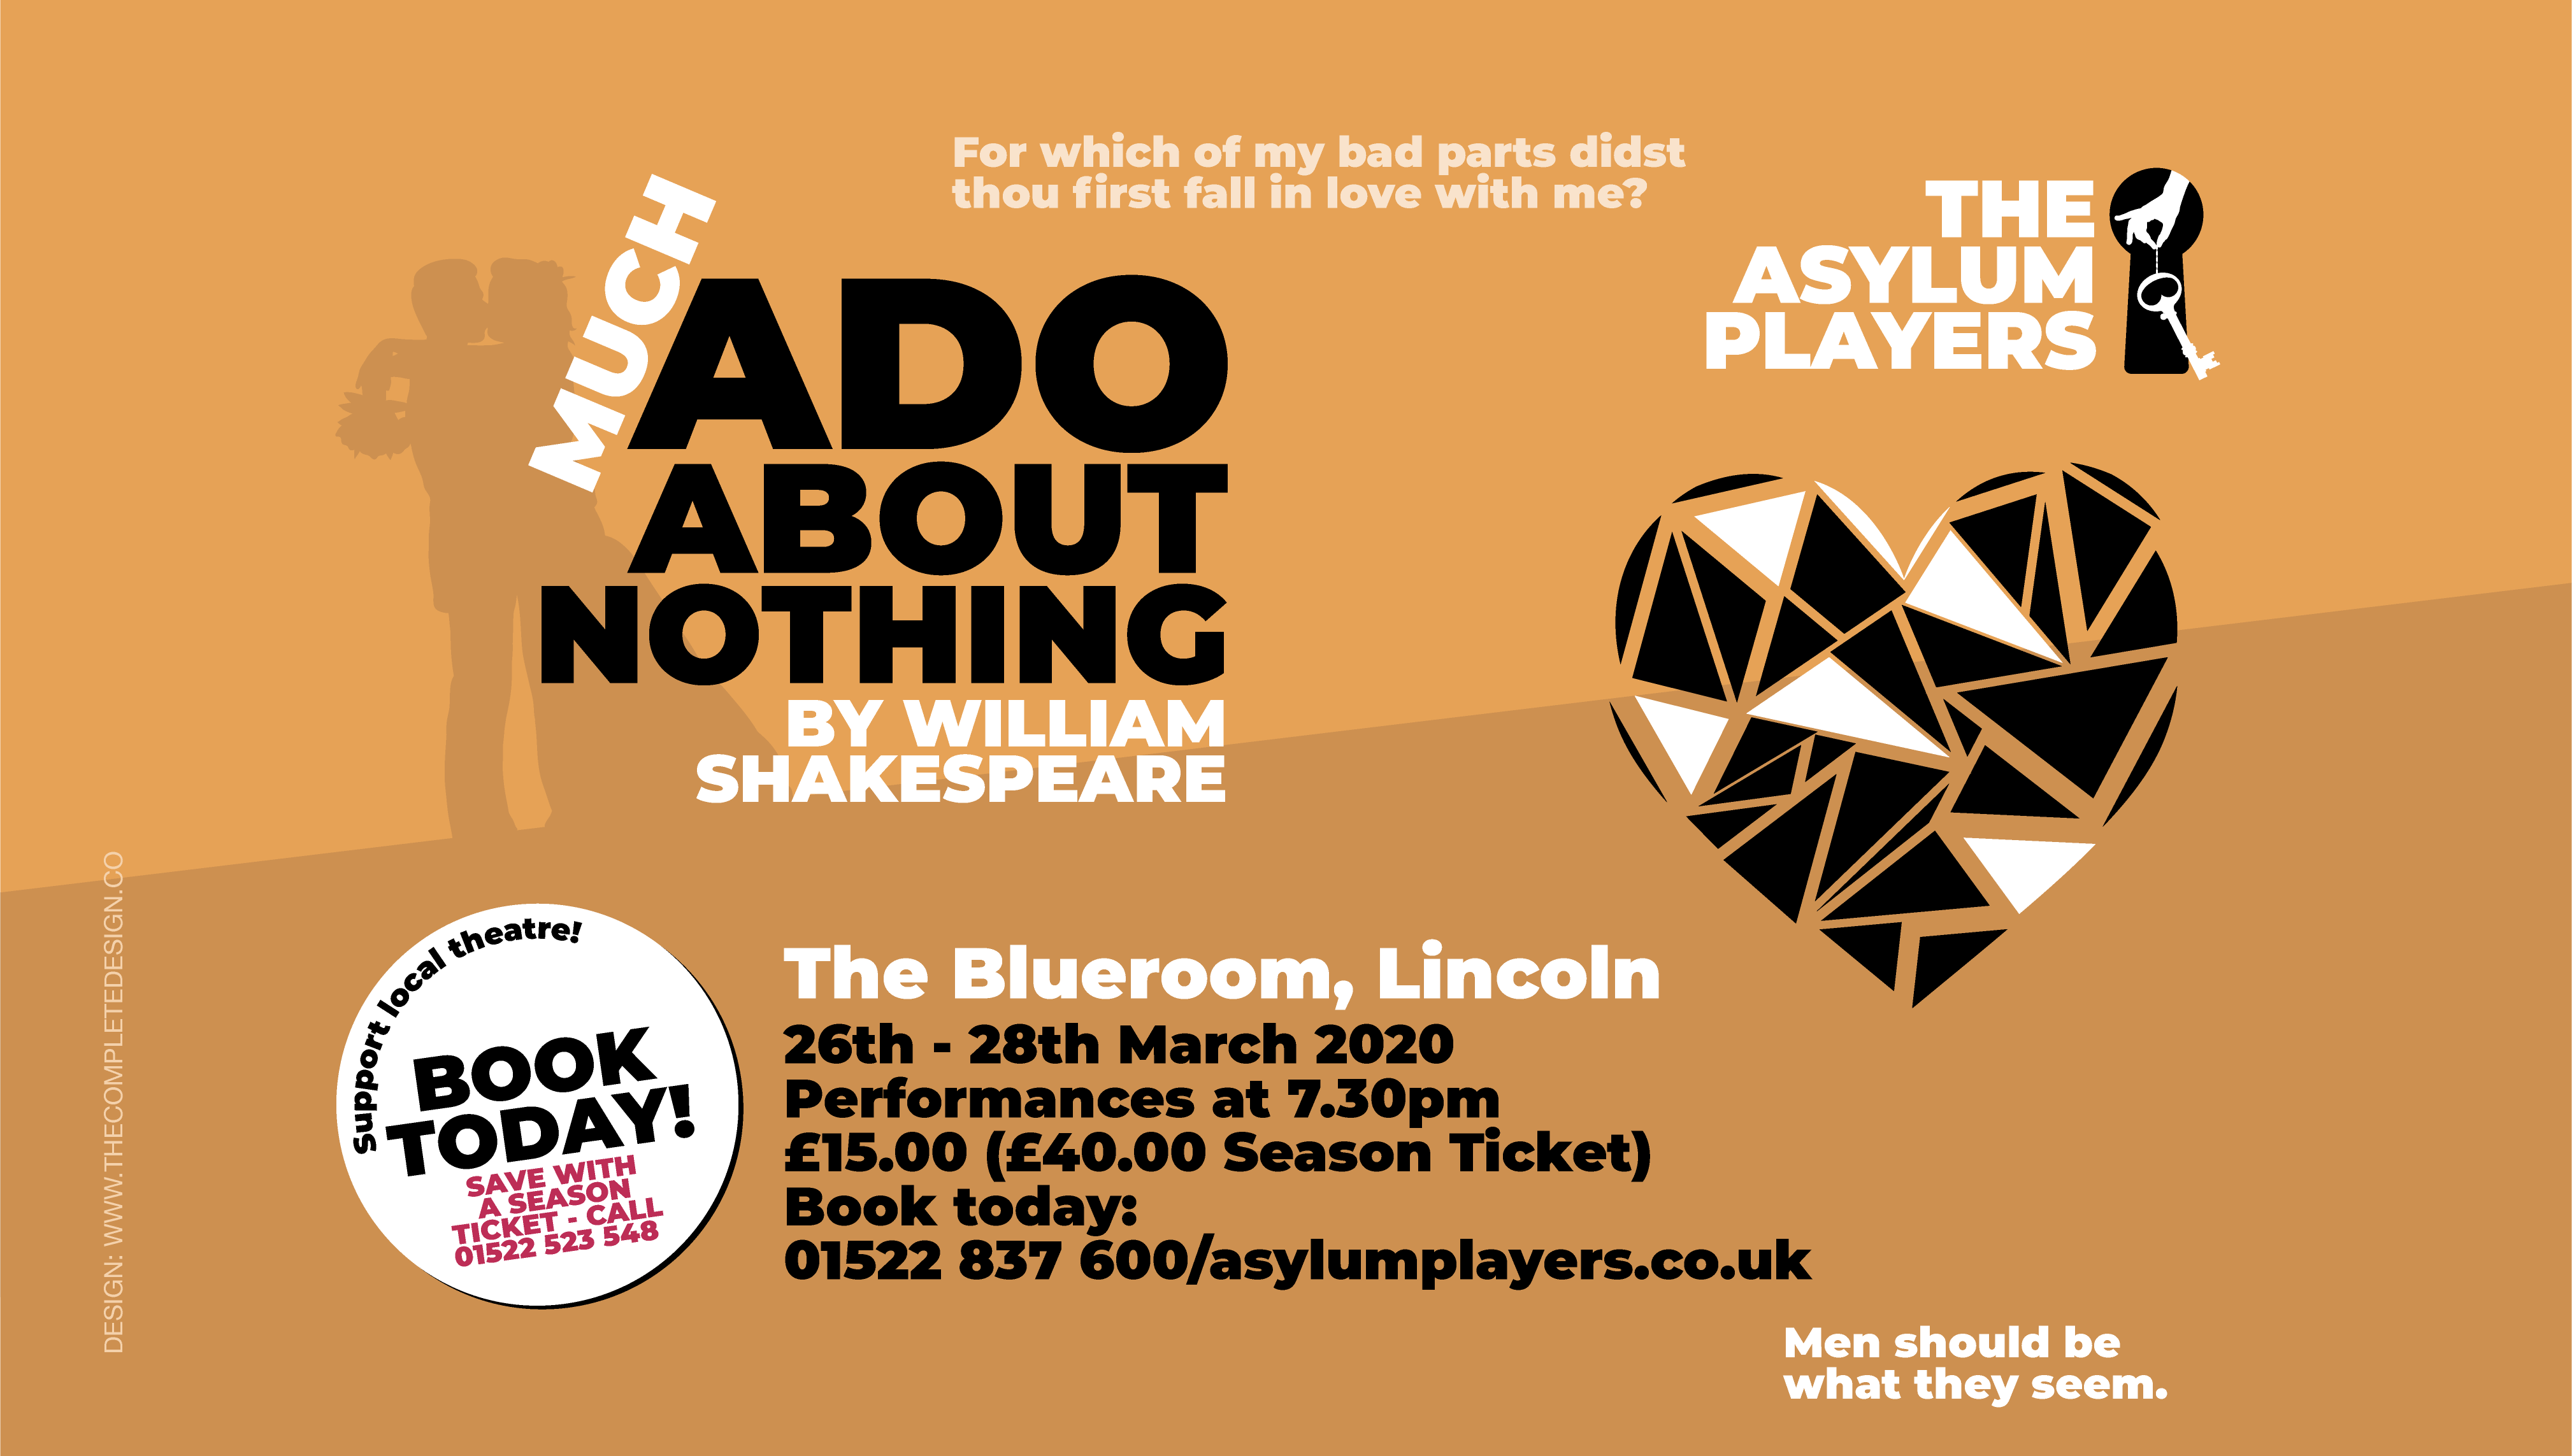 The Asylum Players present: Much Ado About Nothing by William Shakespeare.